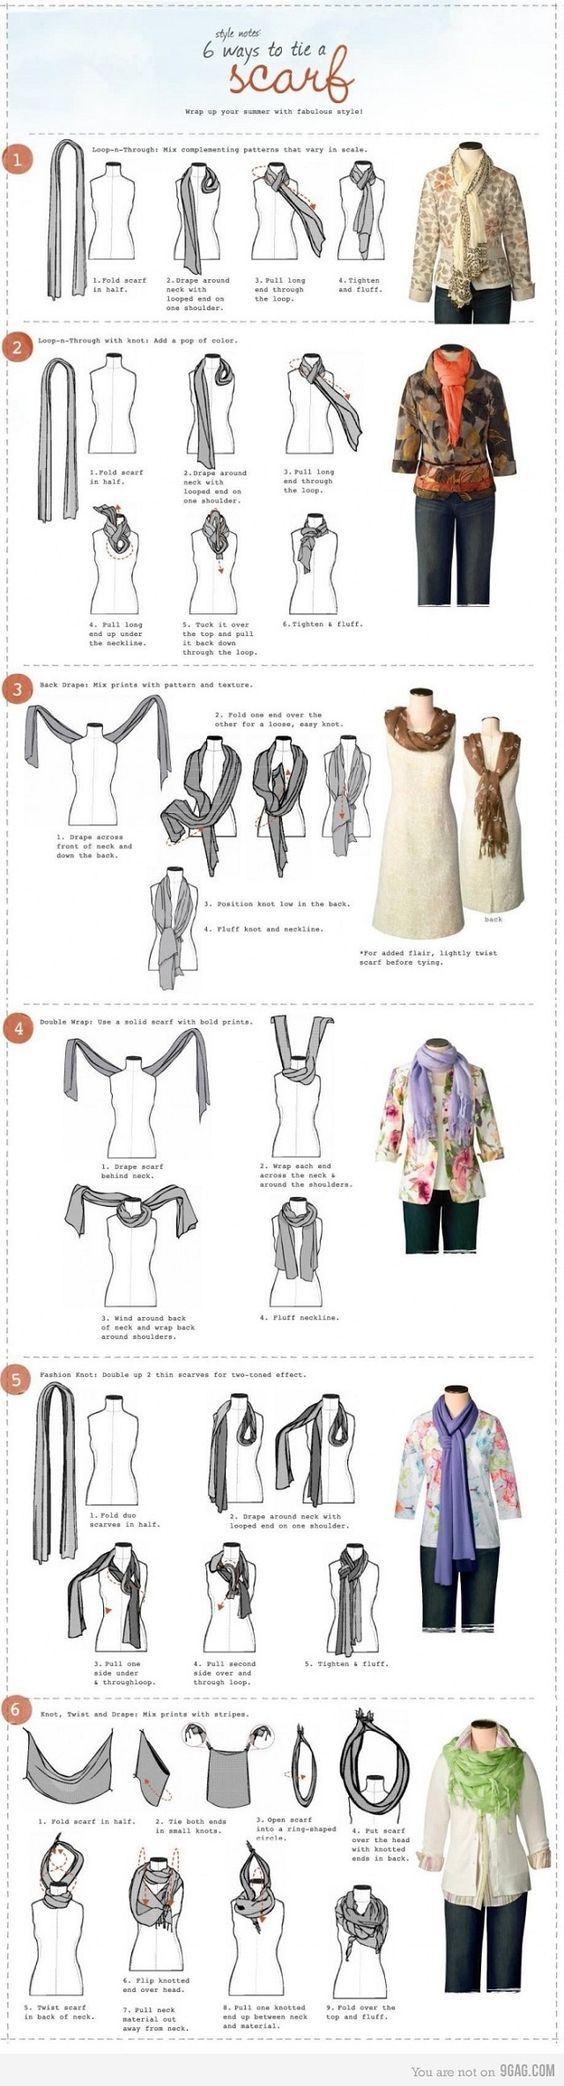 How to tie scarfs: Clothing Tips, Scarf Tutorial, Scarf Ideas, Tie Scarfs, Scarf Ties, Diy Scarf Dress, Scarf Styles, Fashion Tips, Scarf Wraps